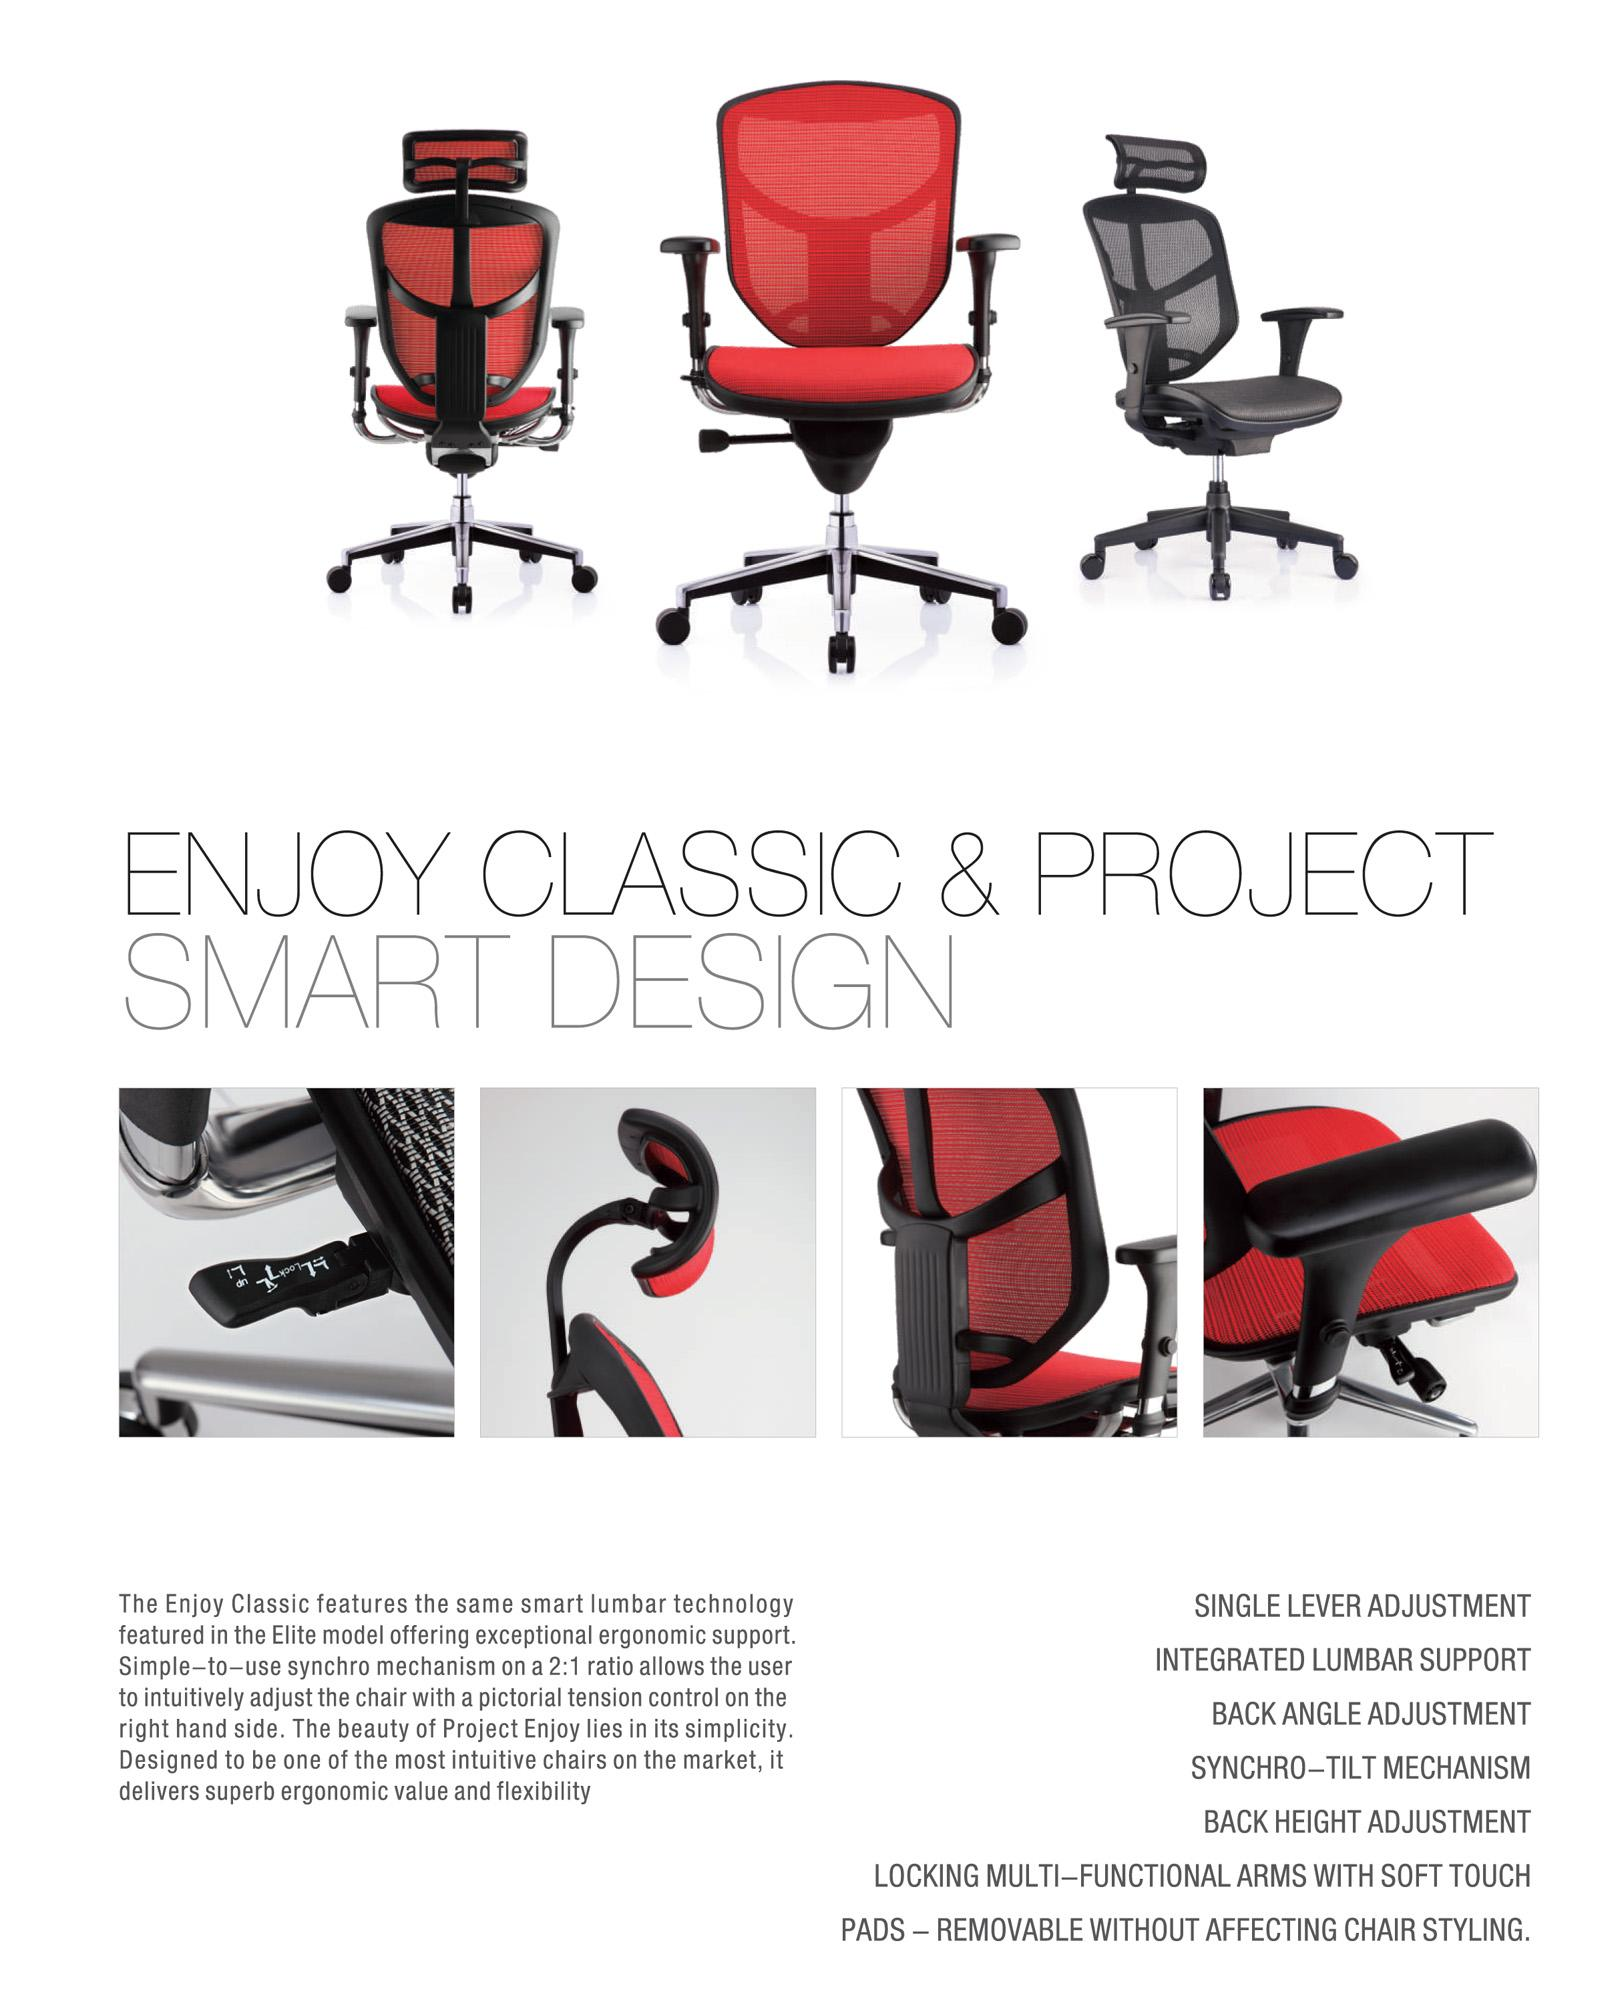 (5 Years Warranty) Ergohuman Enjoy Classic Smart Design Chair / Office  Chair / Comfortable / Gaming Chair - Free installation